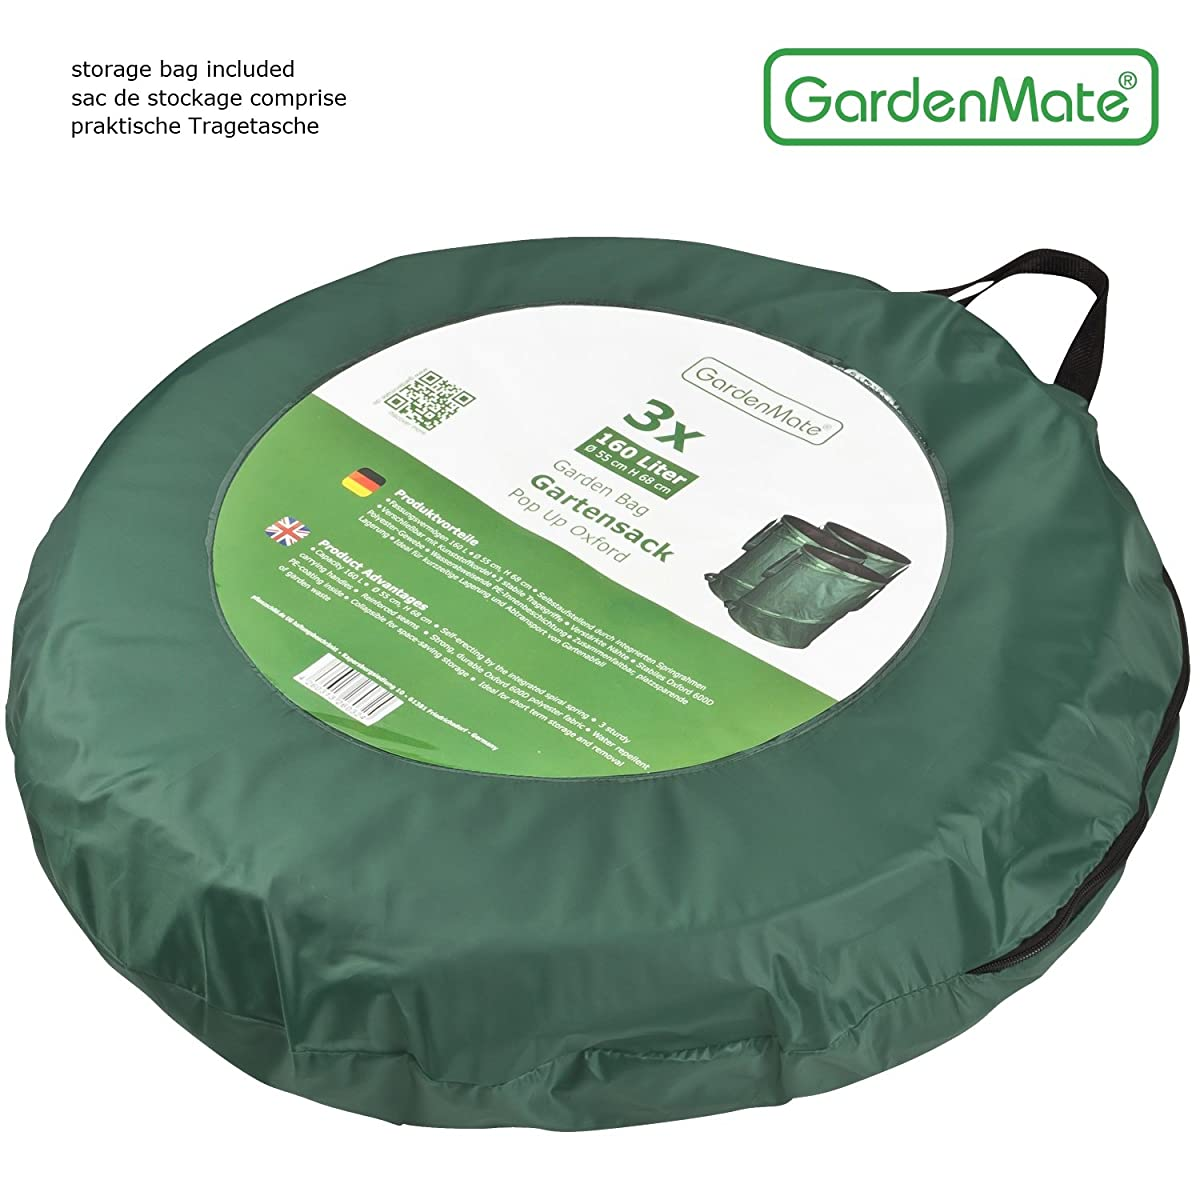 GardenMate 2-Pack 43 Gallons Pop-Up Garden Waste Bags - Collapsible spring bucket - Collapsible Container